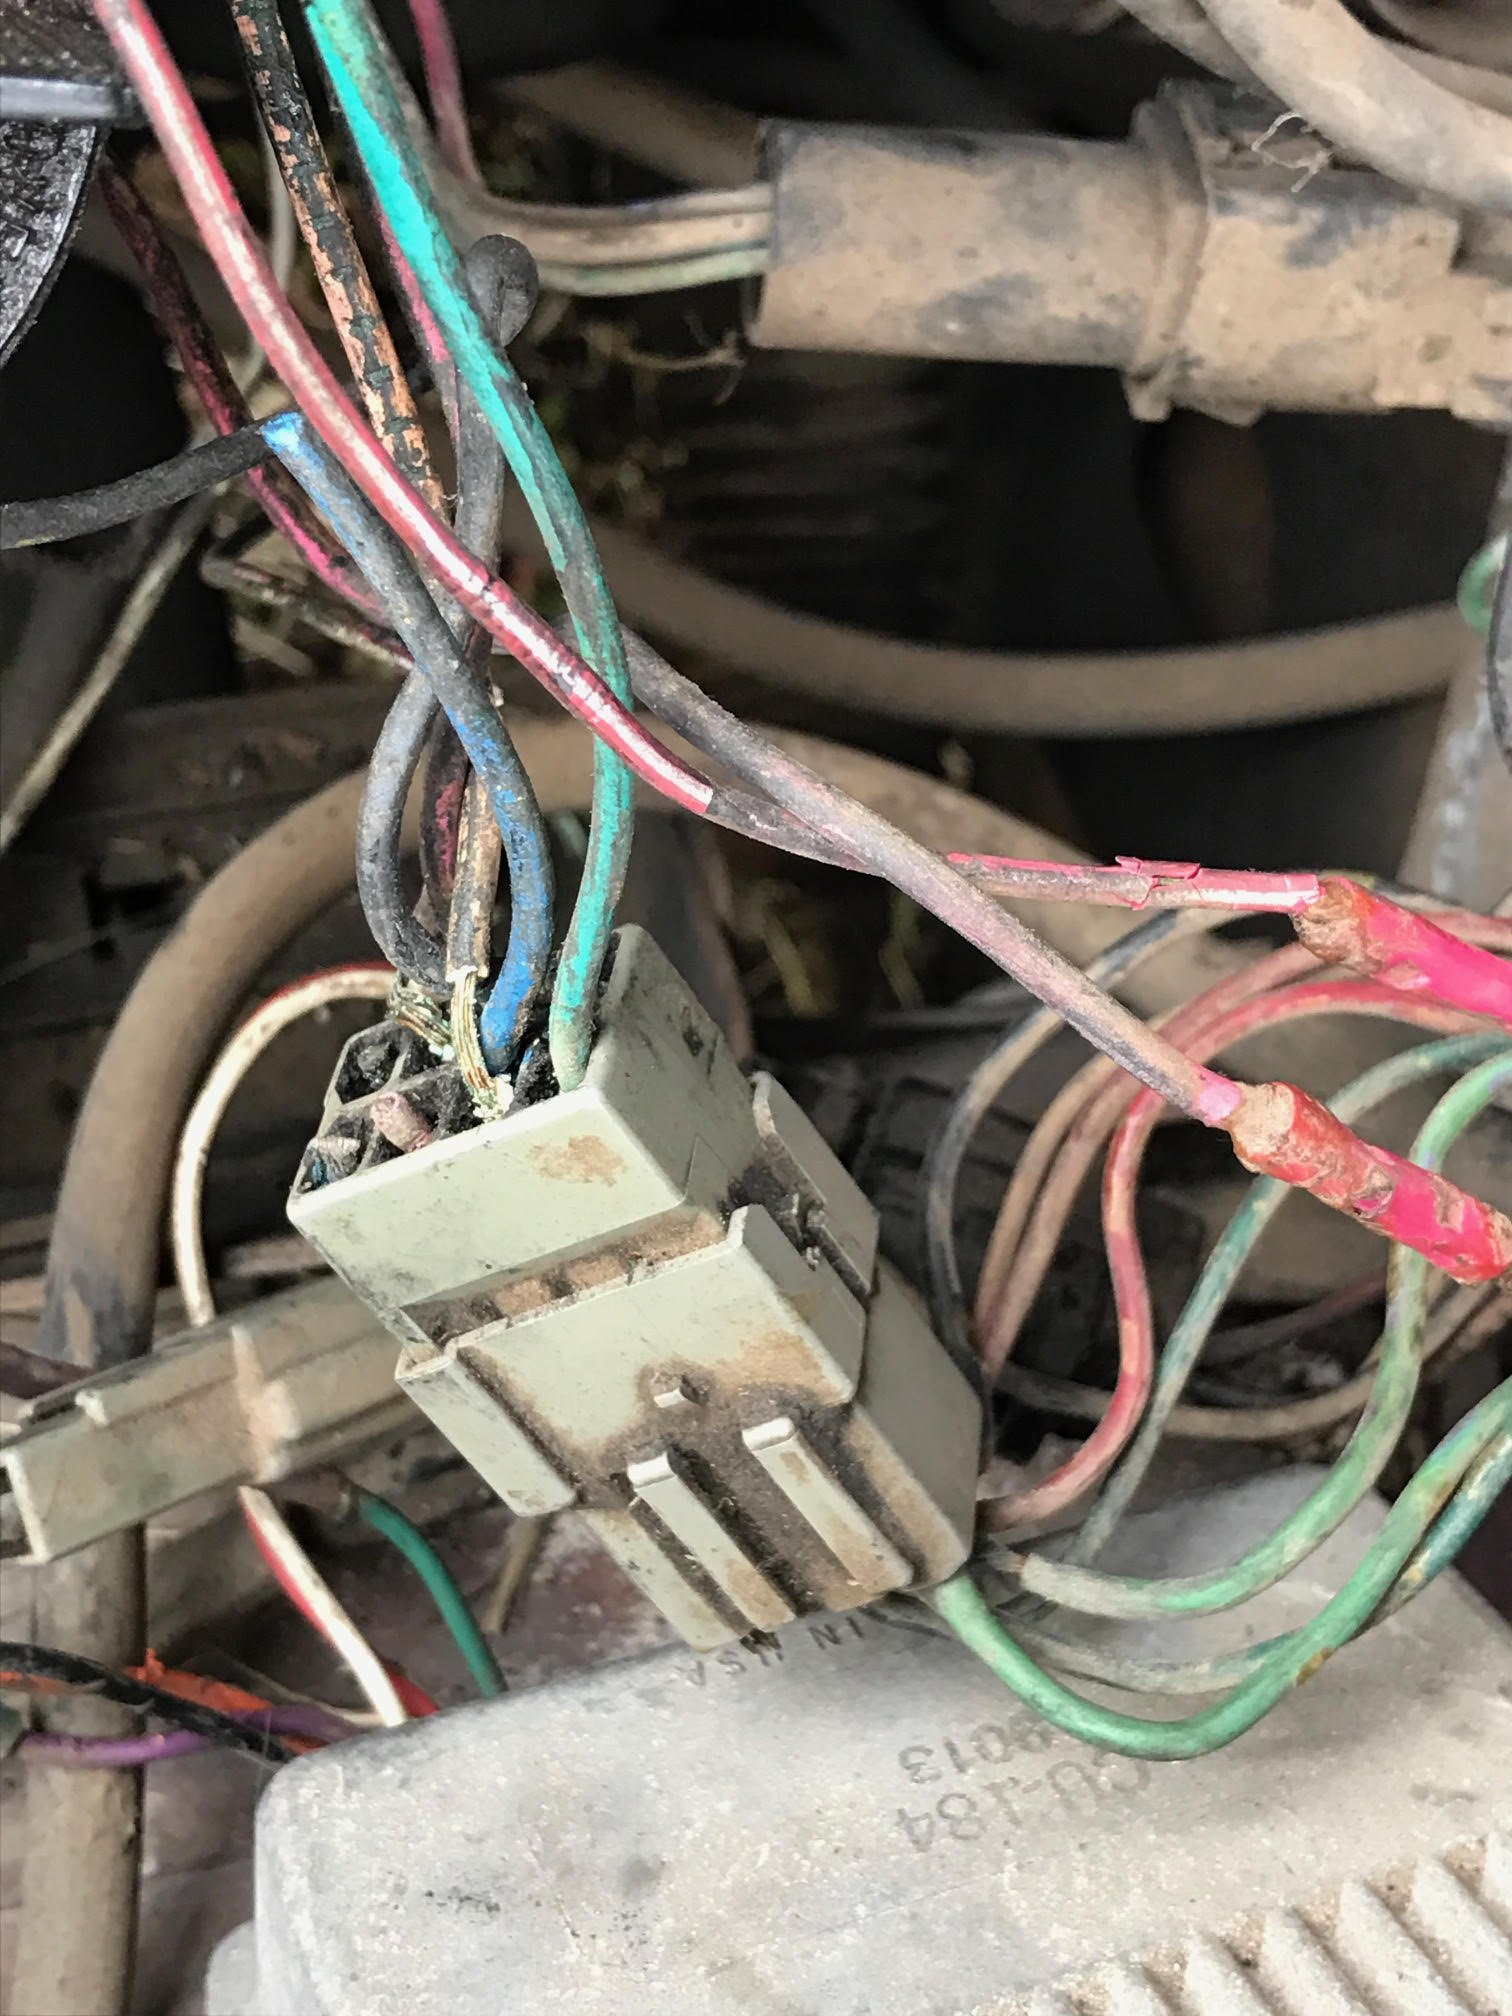 0 5 Mustang Tach Wiring | Wiring Schematic Diagram - pokesoku.co  Mustang Wiring Harness on